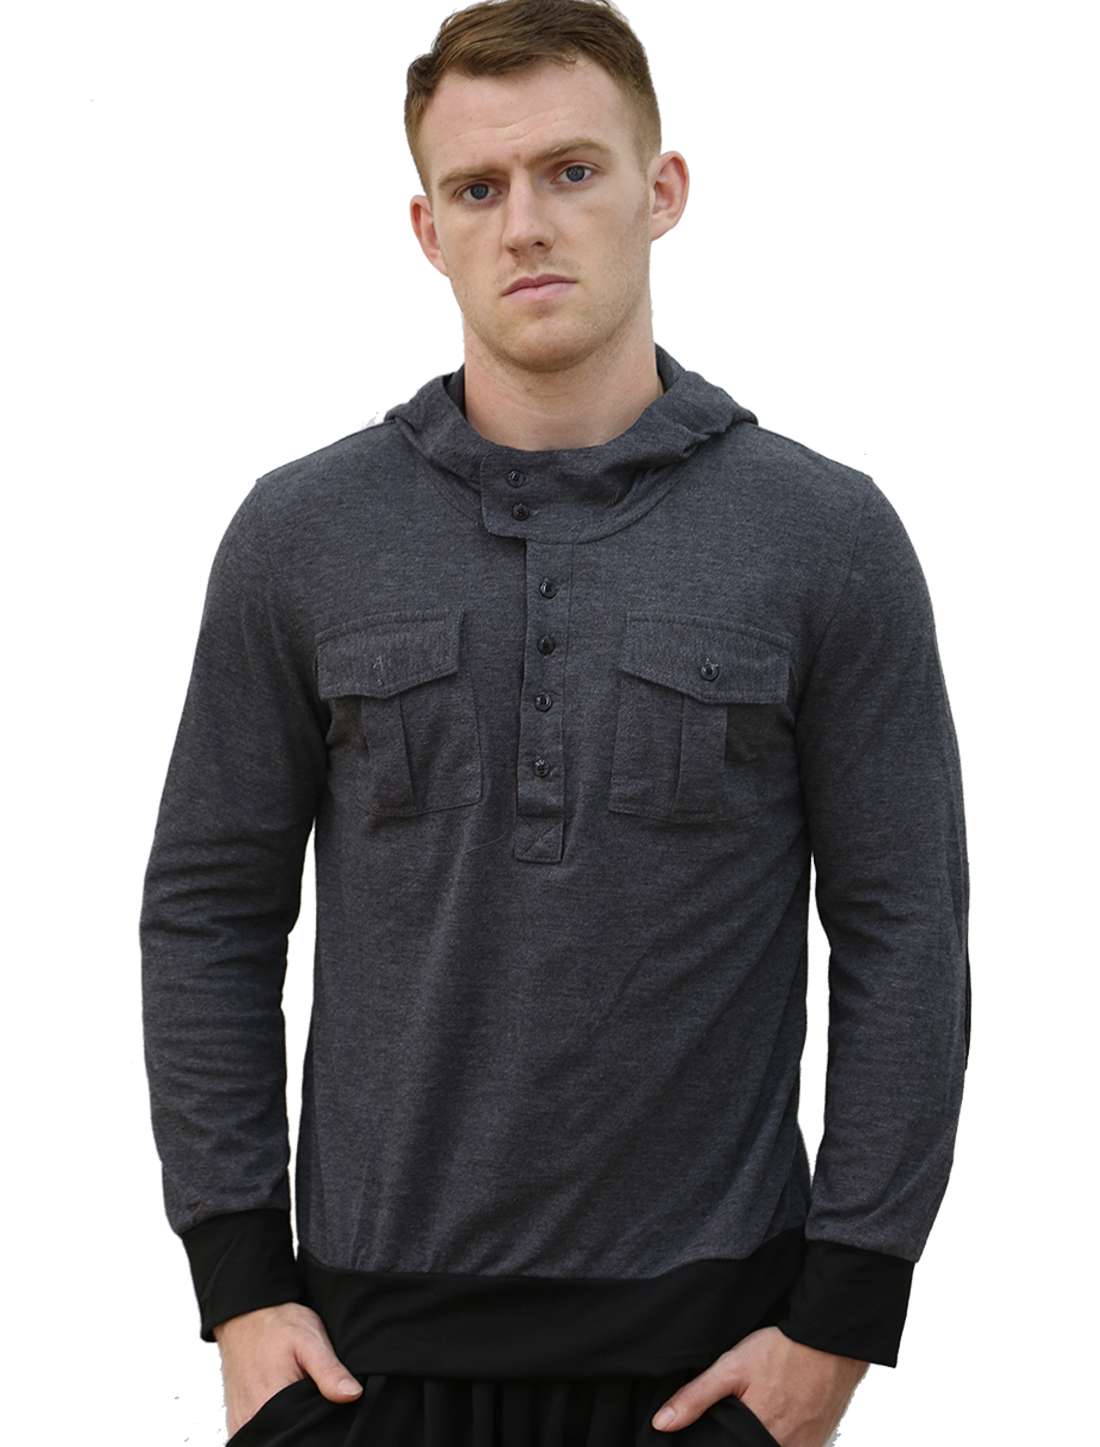 Men Buttoned Pockets Placket Front Slim Fit Hoodies Tee Shirt Dark Gray M